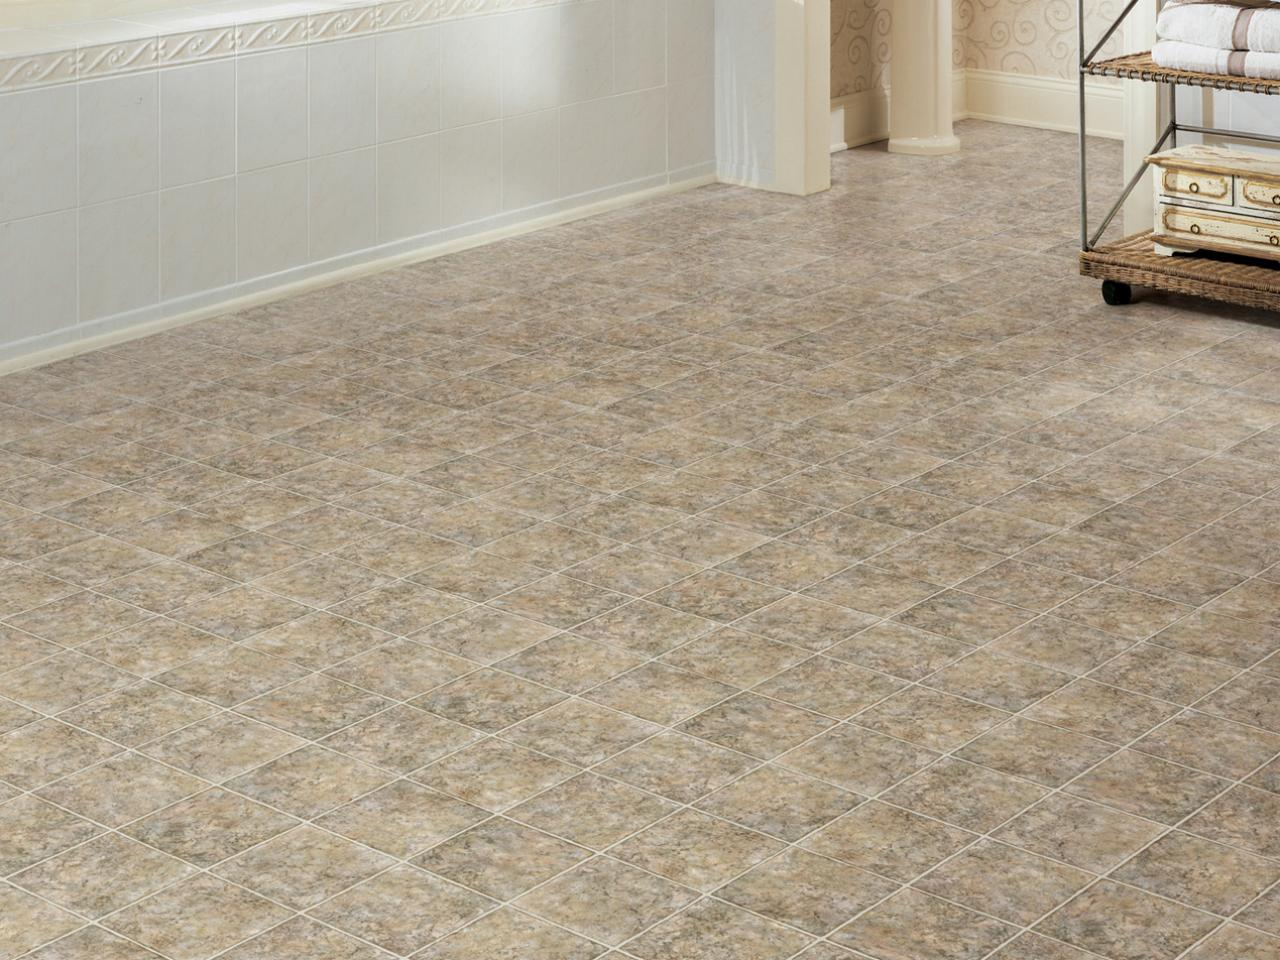 Awesome Vinyl, Low Cost and Lovely vinyl flooring bathroom